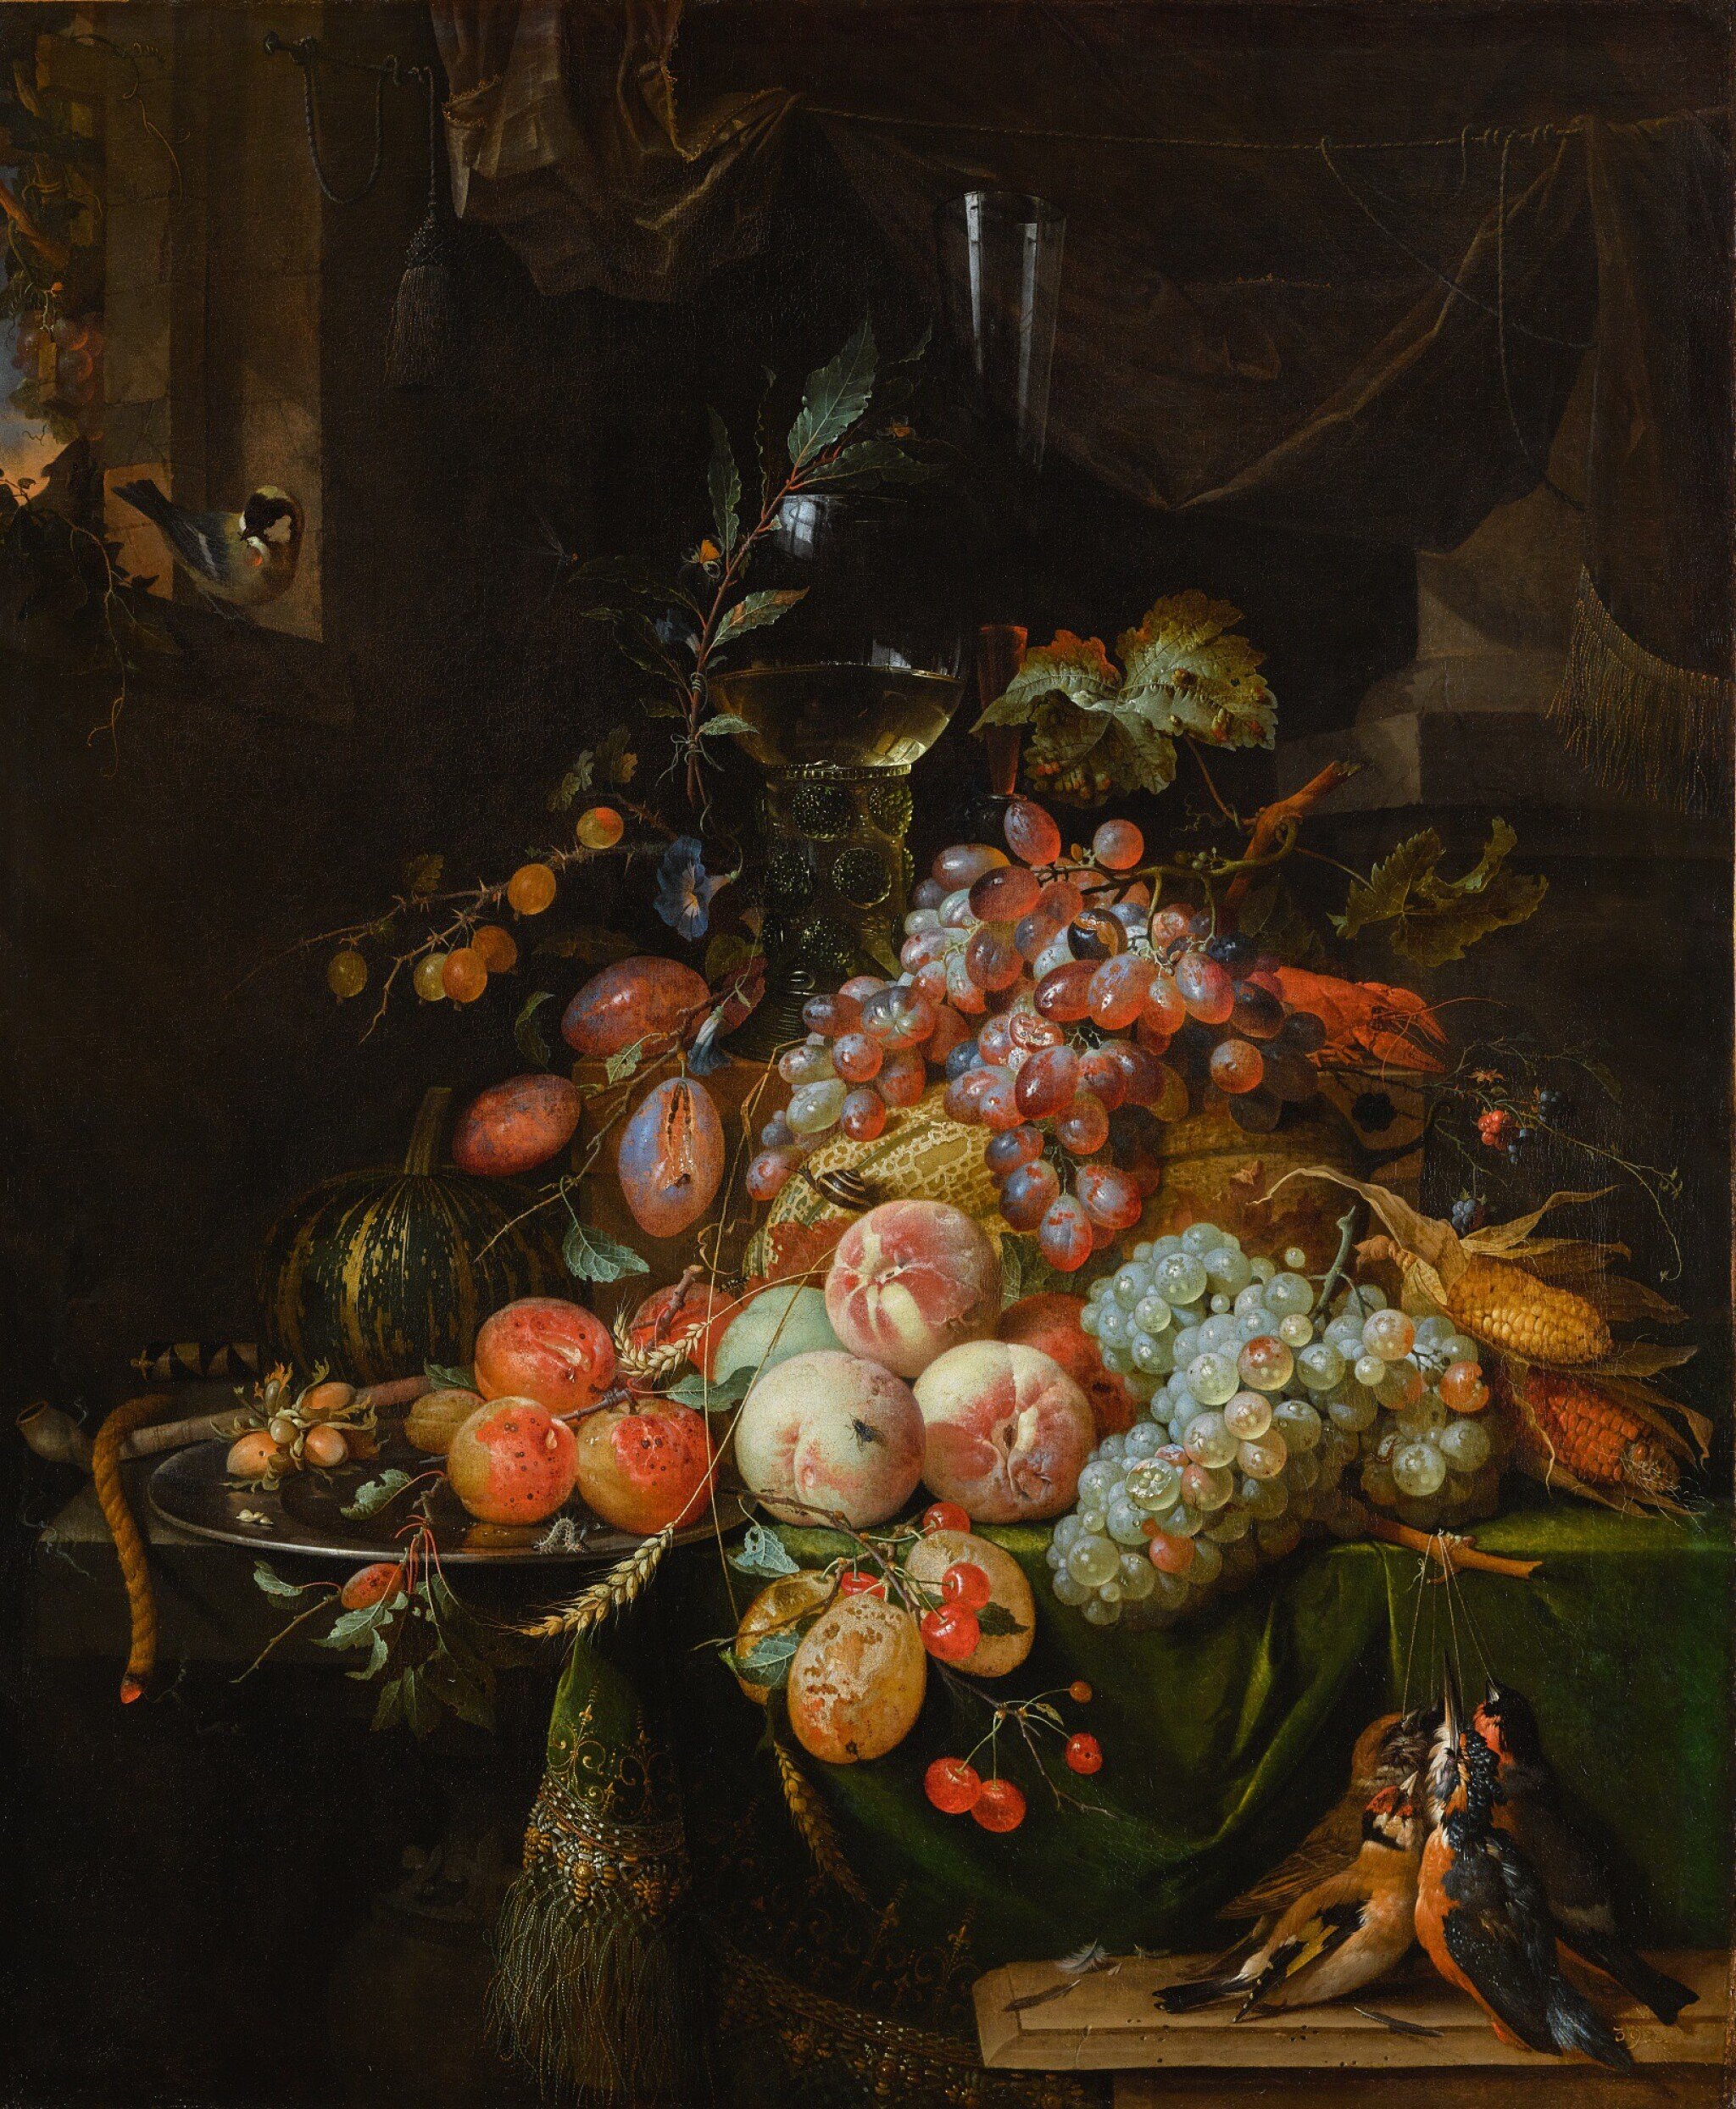 View full screen - View 1 of Lot 60. ABRAHAM MIGNON  |  STILL LIFE WITH PLUMS, PEACHES, APRICOTS, GRAPES AND A MELON, WITH A ROEMER GLASS AND A FLUTE GLASS, ALL ON A DRAPED TABLE, A GOLDFINCH ON THE WINDOW SILL AND A BRACE OF SONGBIRDS.